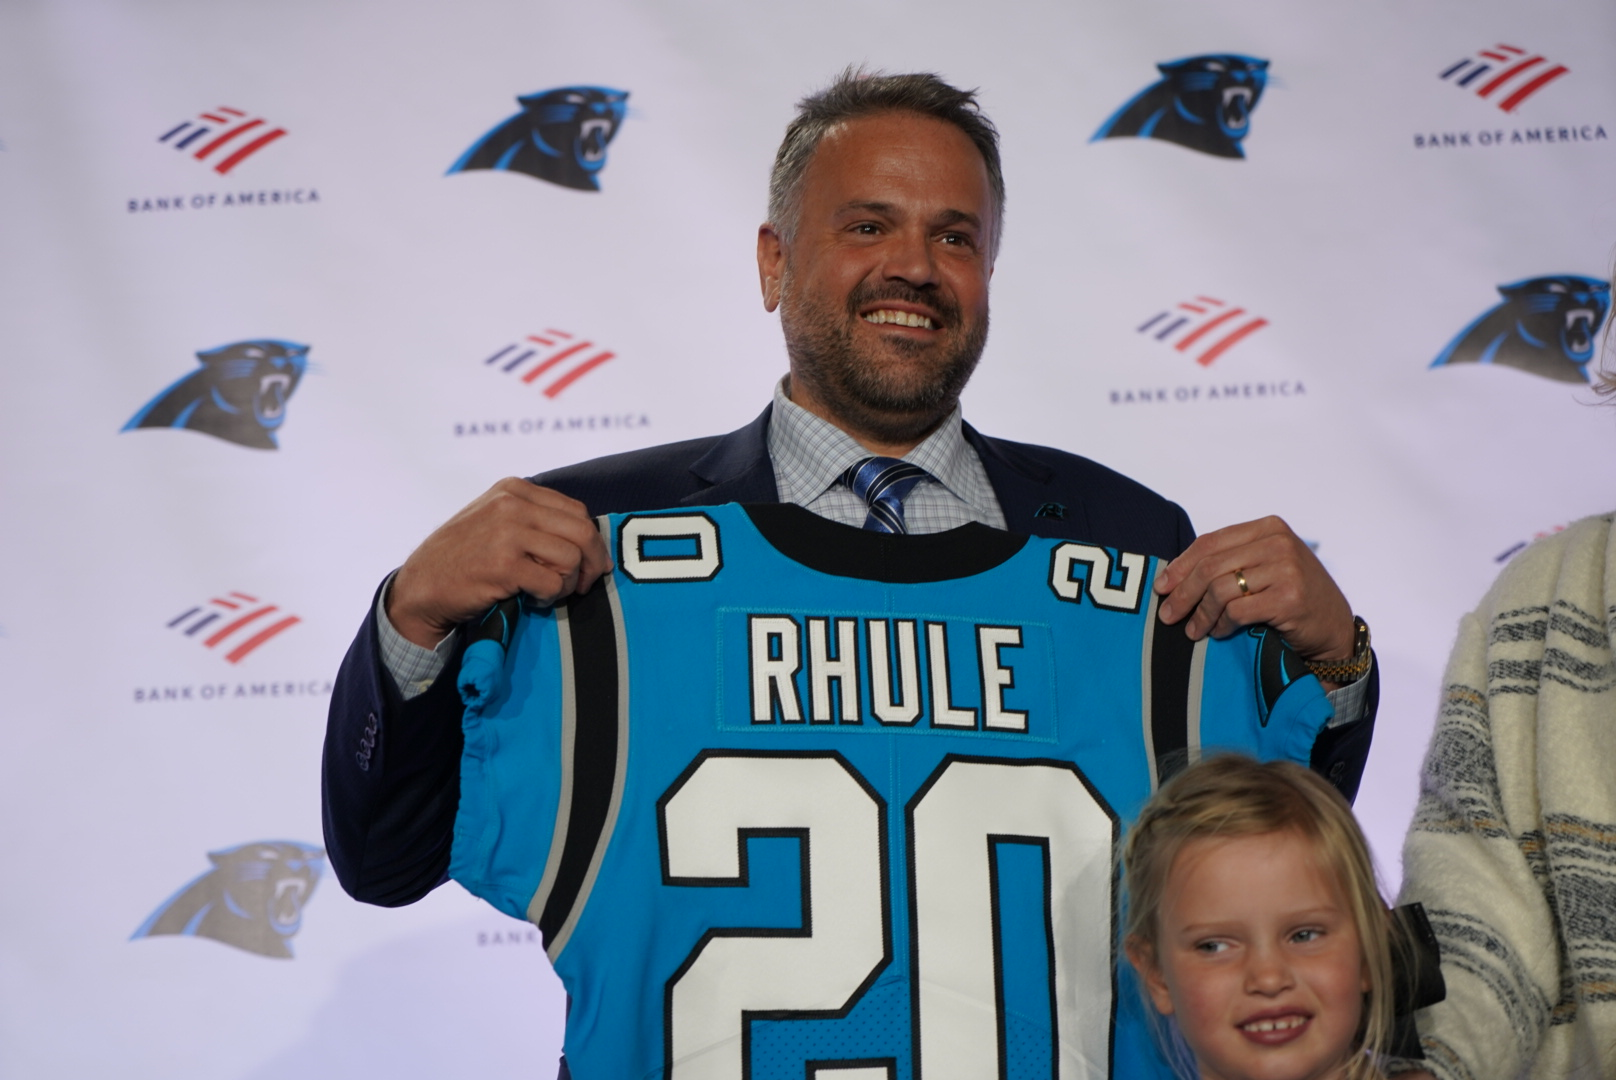 Matt Rhule's Obsession With Gaining Edges Makes Him the Perfect Panthers Coach